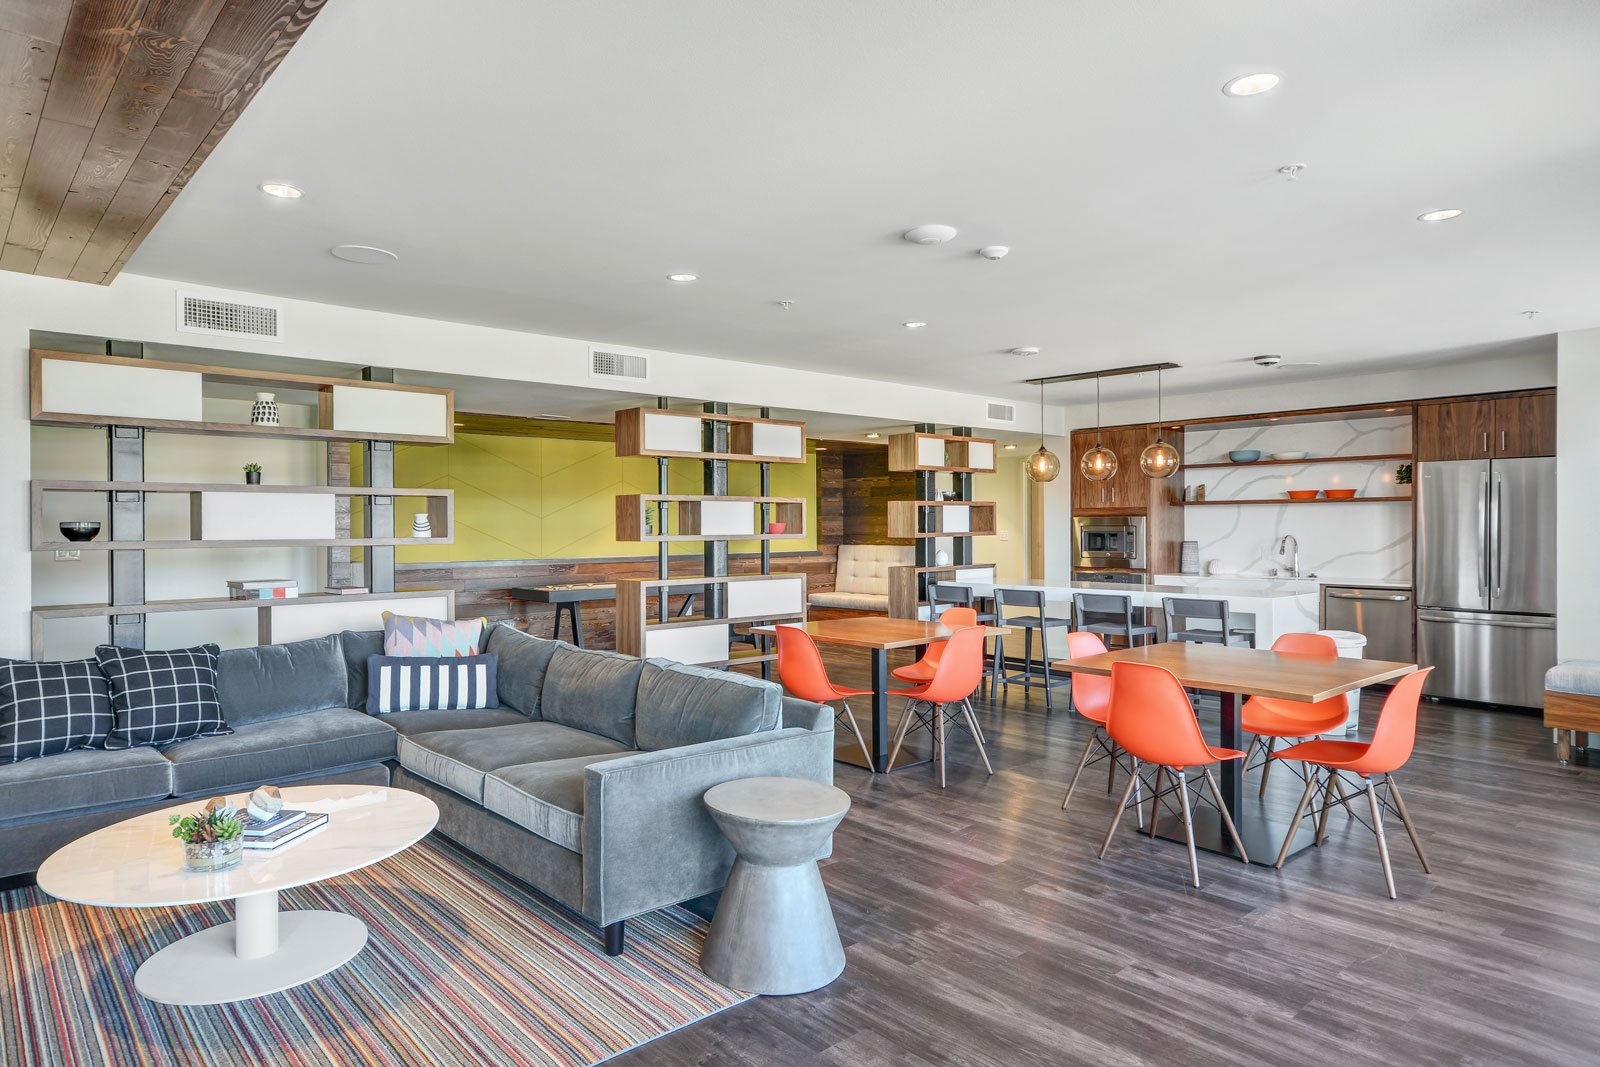 Reserve an Entertaining Space at The Whittaker, 98116, WA